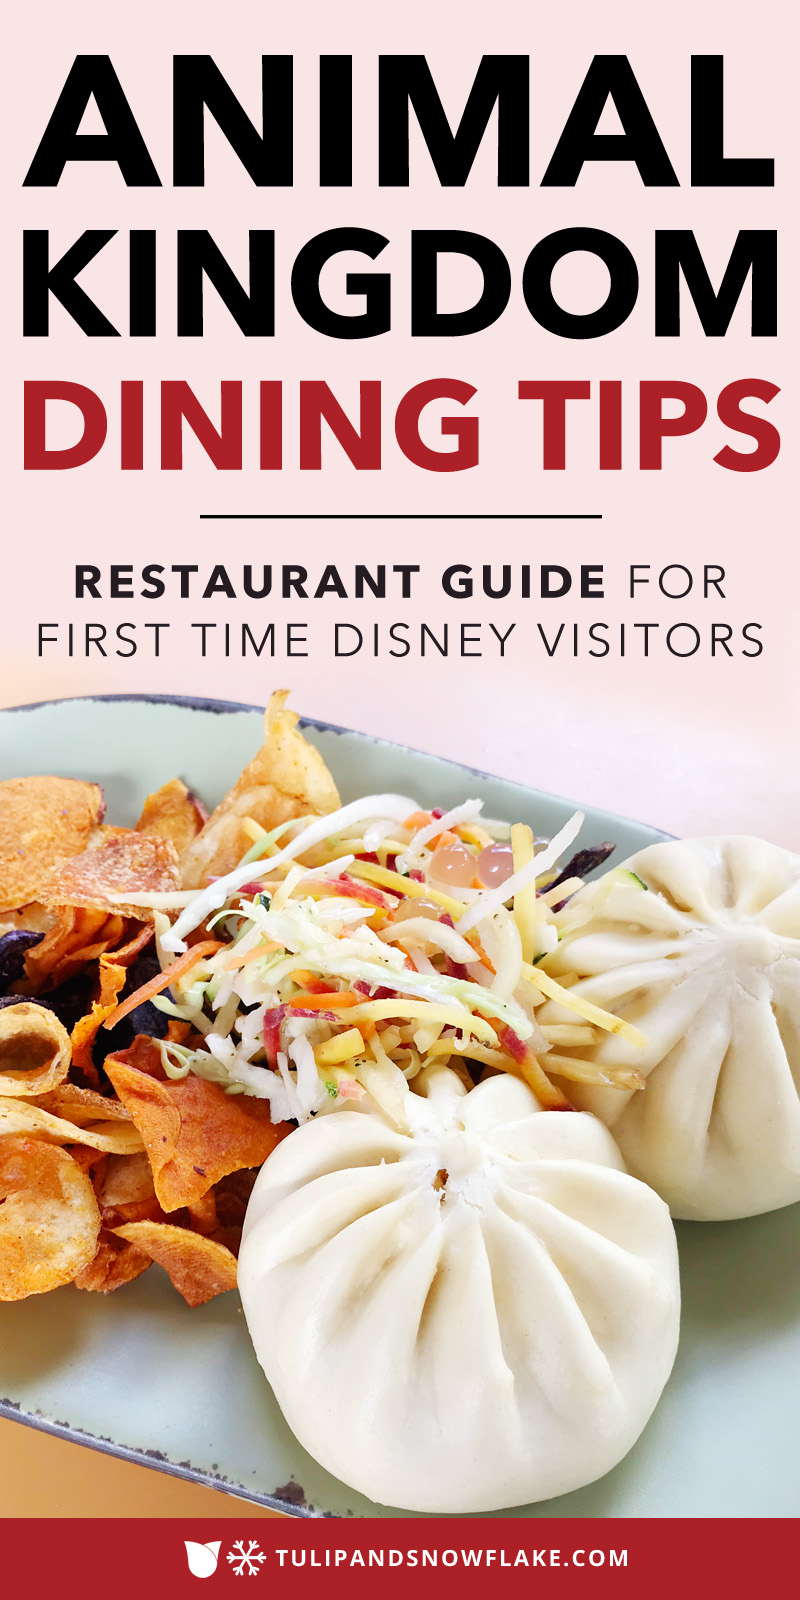 Animal Kingdom Dining Tips